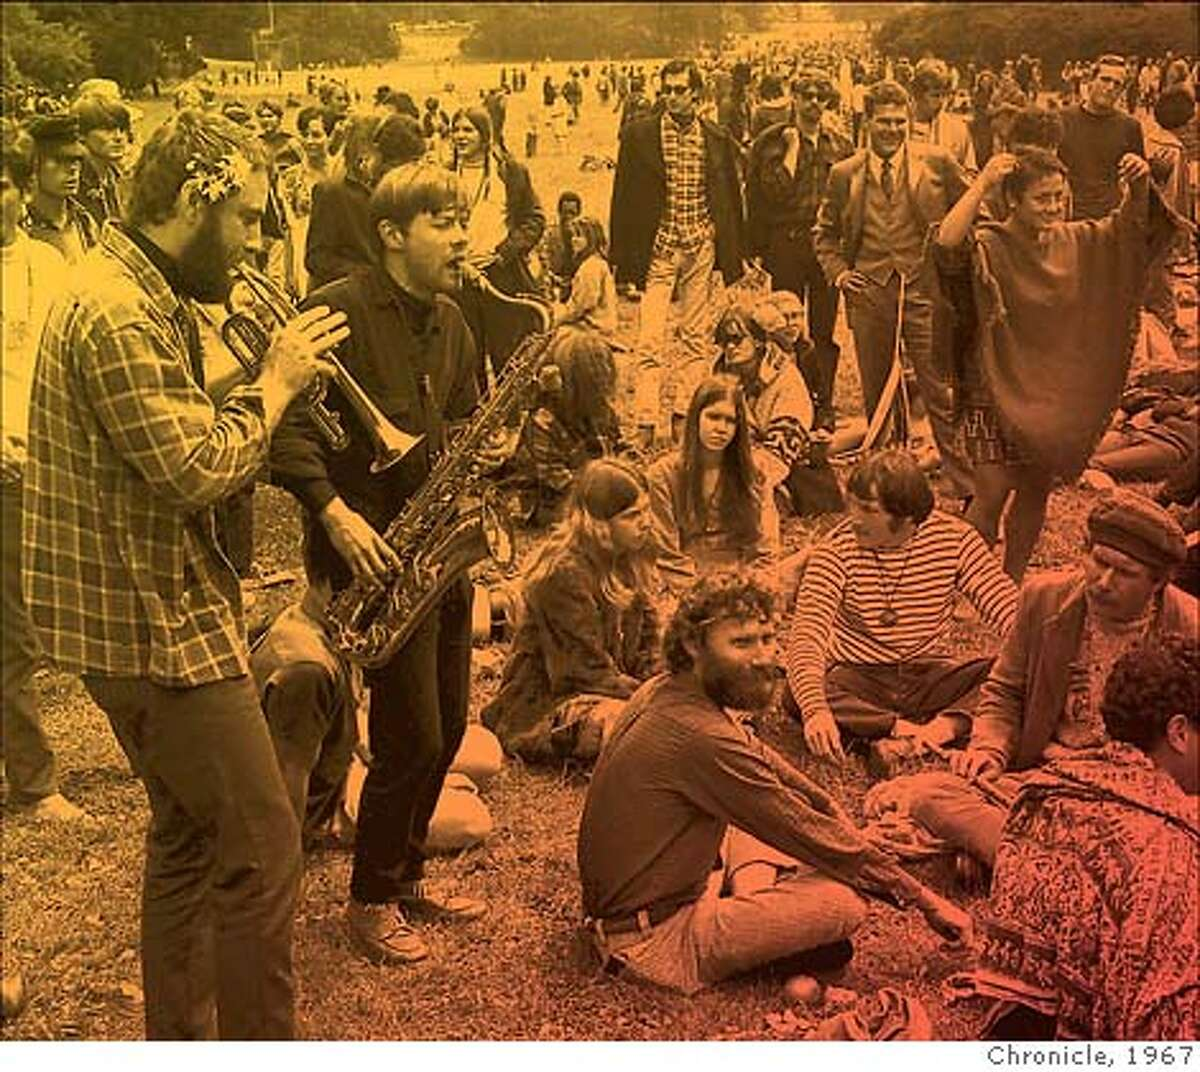 The magic that struck for a short while in the summer of 1967 is still around us, though not in as concentrated a dose as it was in San Francisco. Photo illustration by Erick Wong